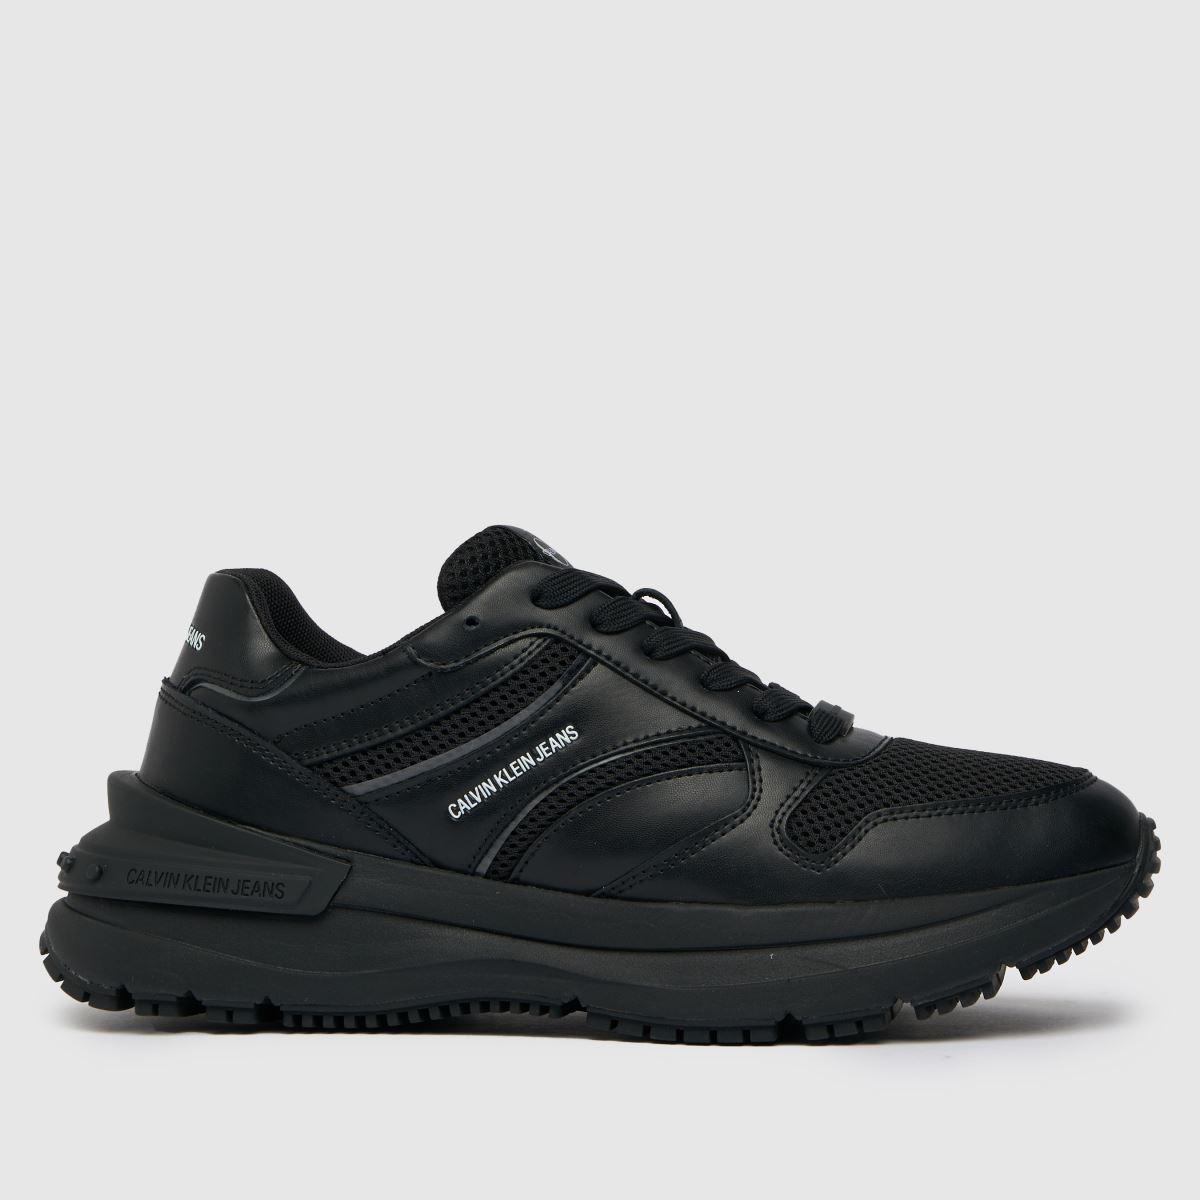 CALVIN KLEIN Black Runner Lace Up Sneaker Trainers